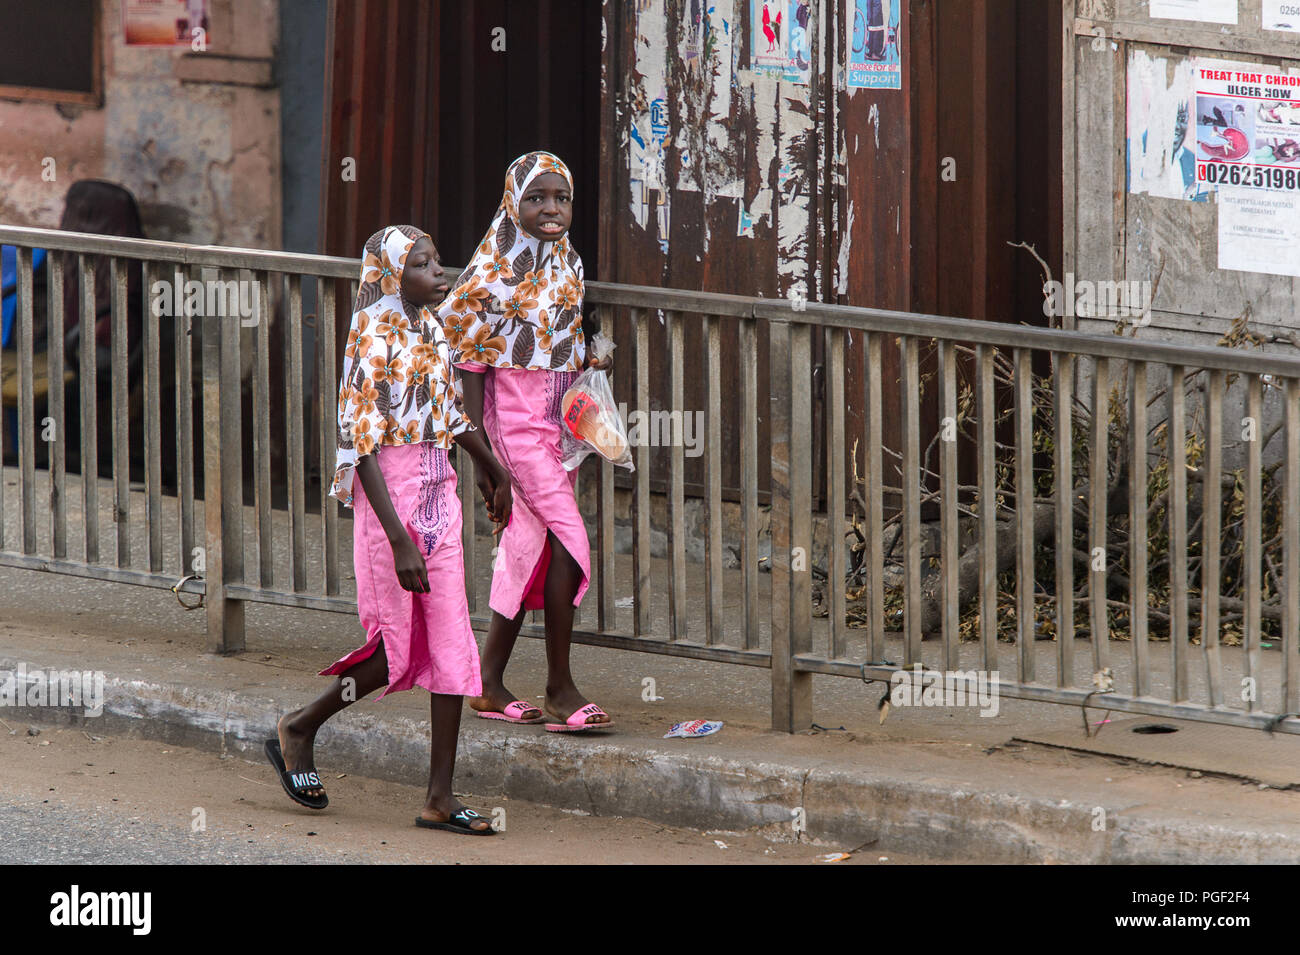 ACCRA, GHANA - JAN 8, 2017: Unidentified Ghanaian two girls wear hijab and pink skirts . Children of Ghana suffer of poverty due to the economic situa - Stock Image